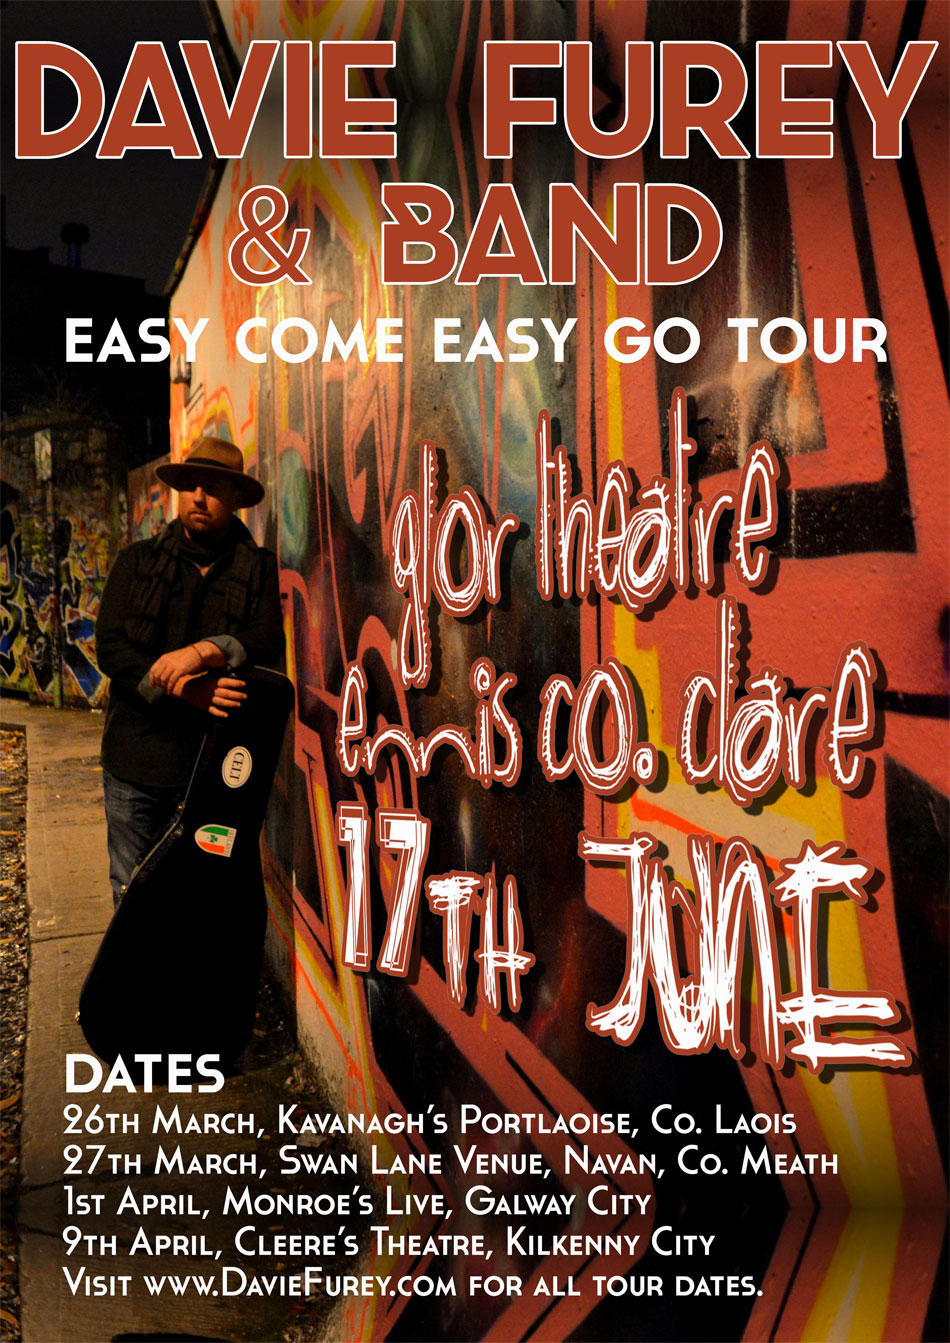 Poster Design - Davie Furey, Easy Com Easy Go Tour.